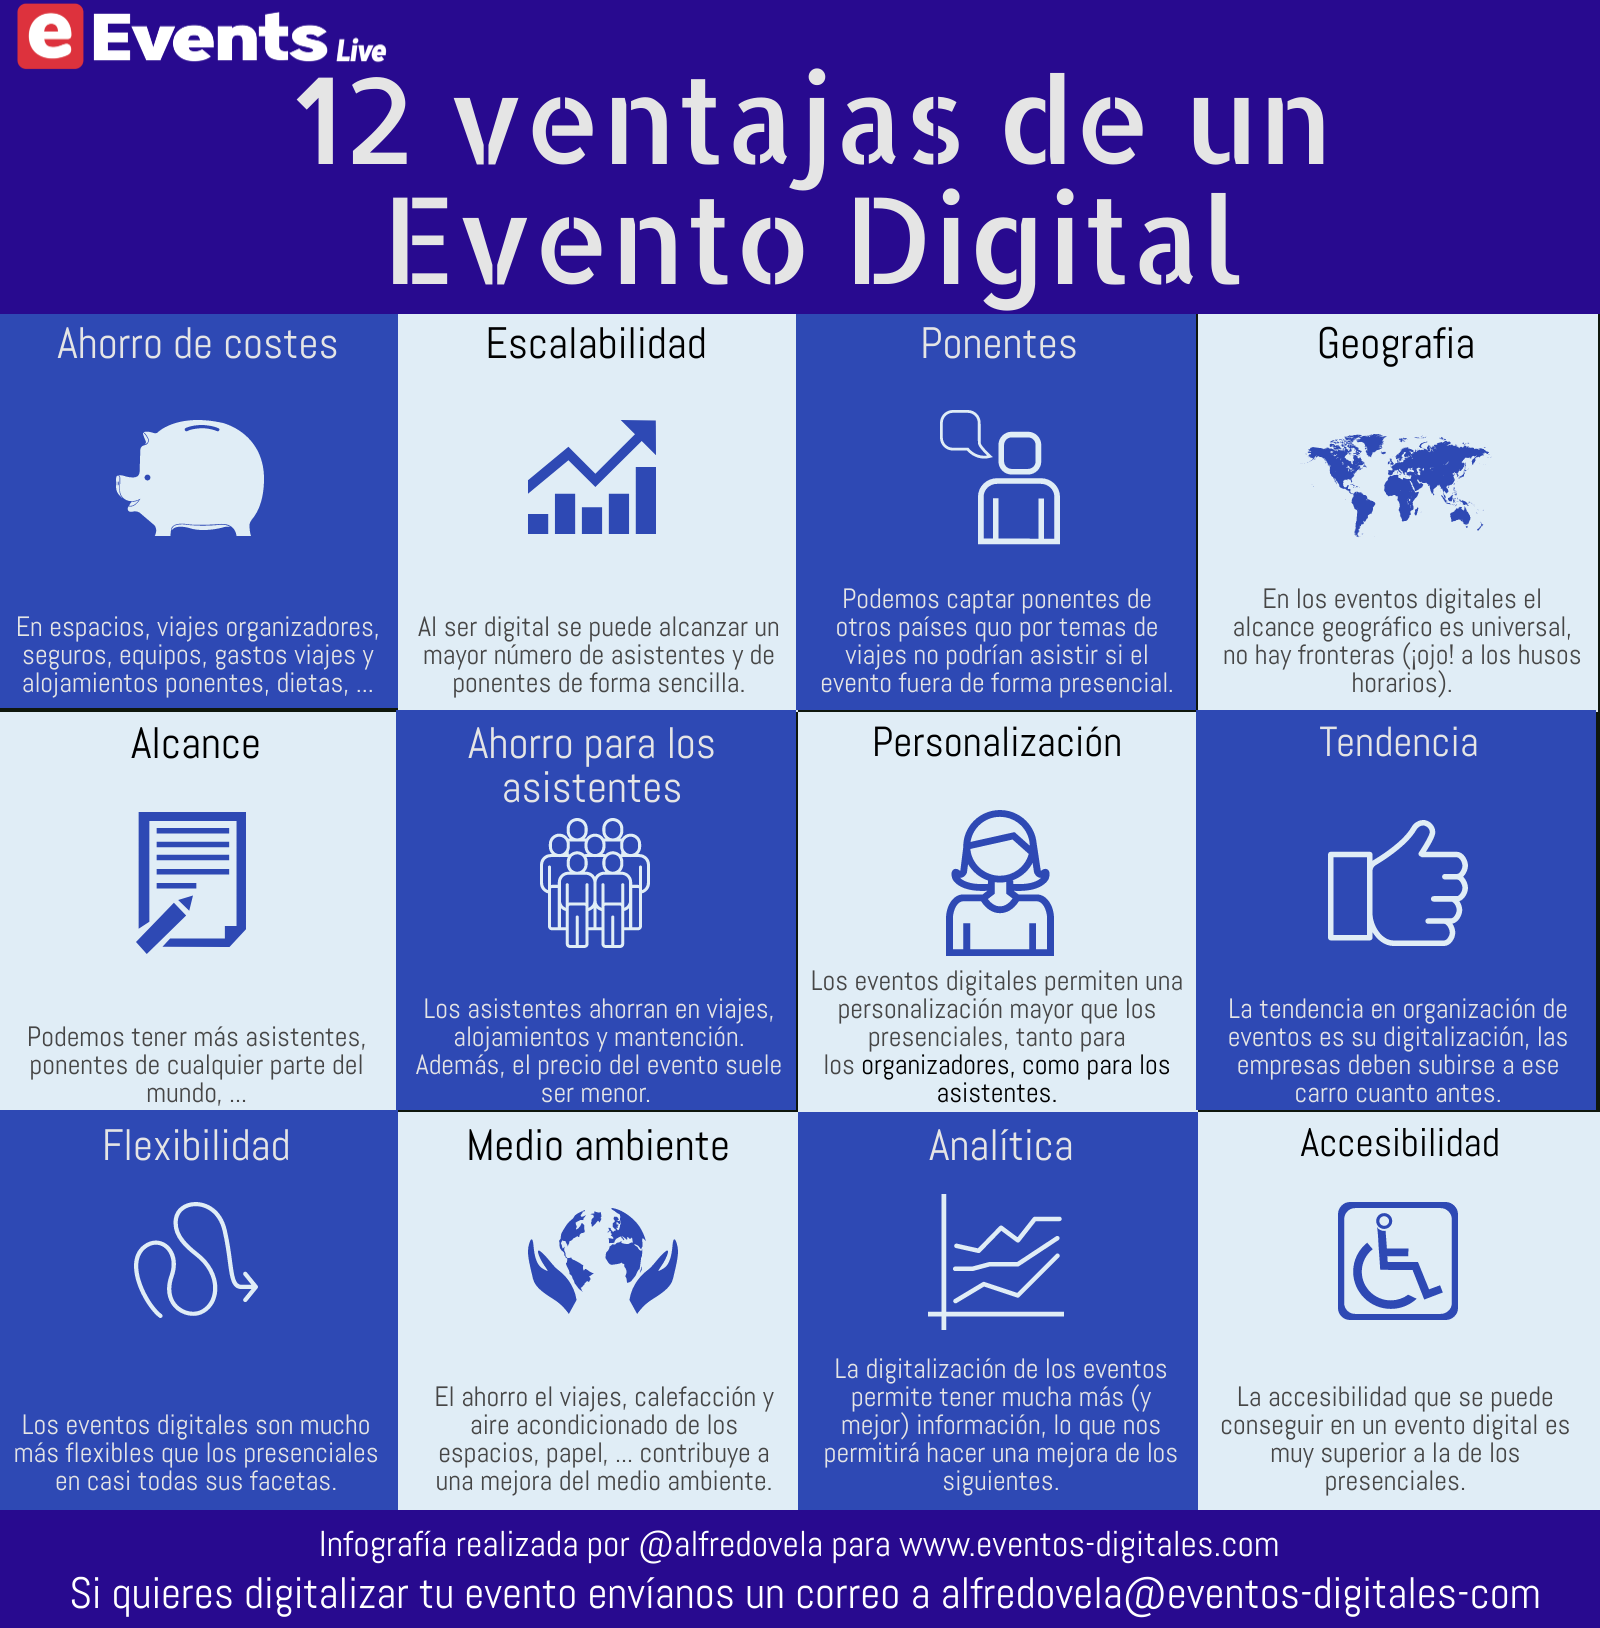 12 ventajas de un Evento Digital #infografia #infographic #marketing